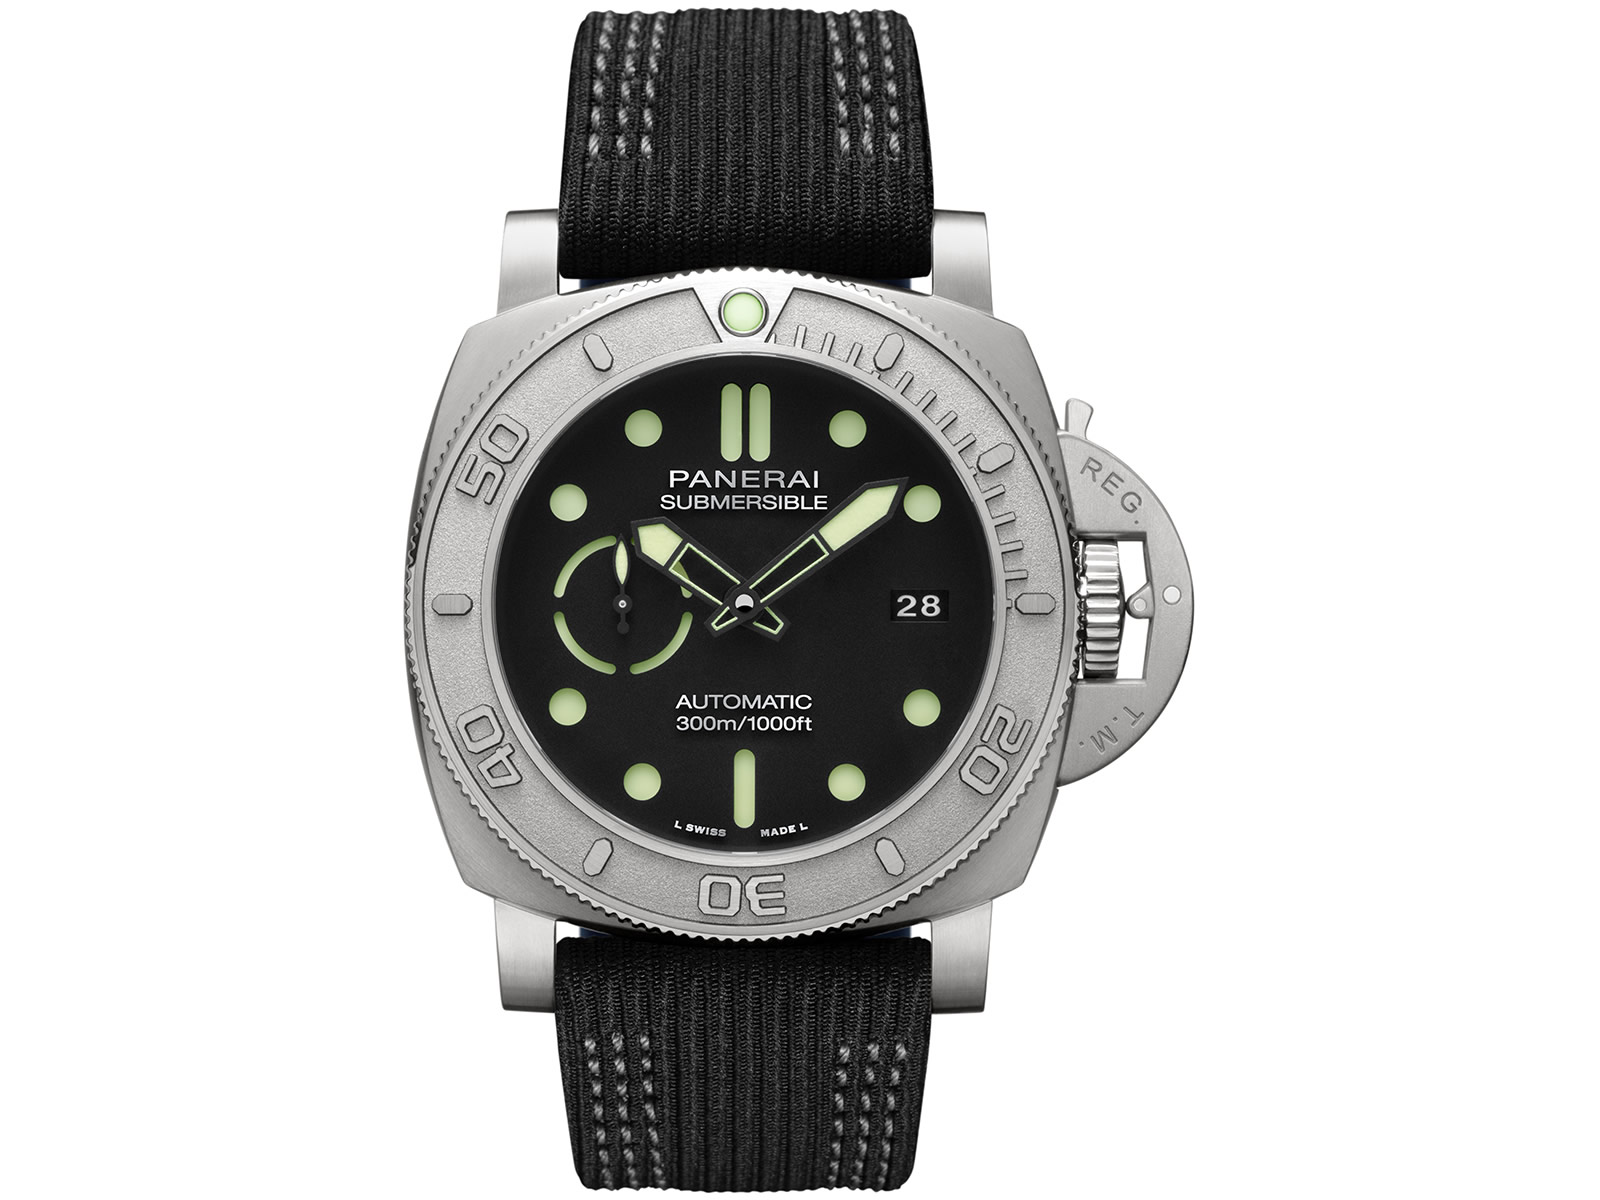 pam00984-officine-panerai-submersible-mike-horn-edition-47mm-5-.jpg